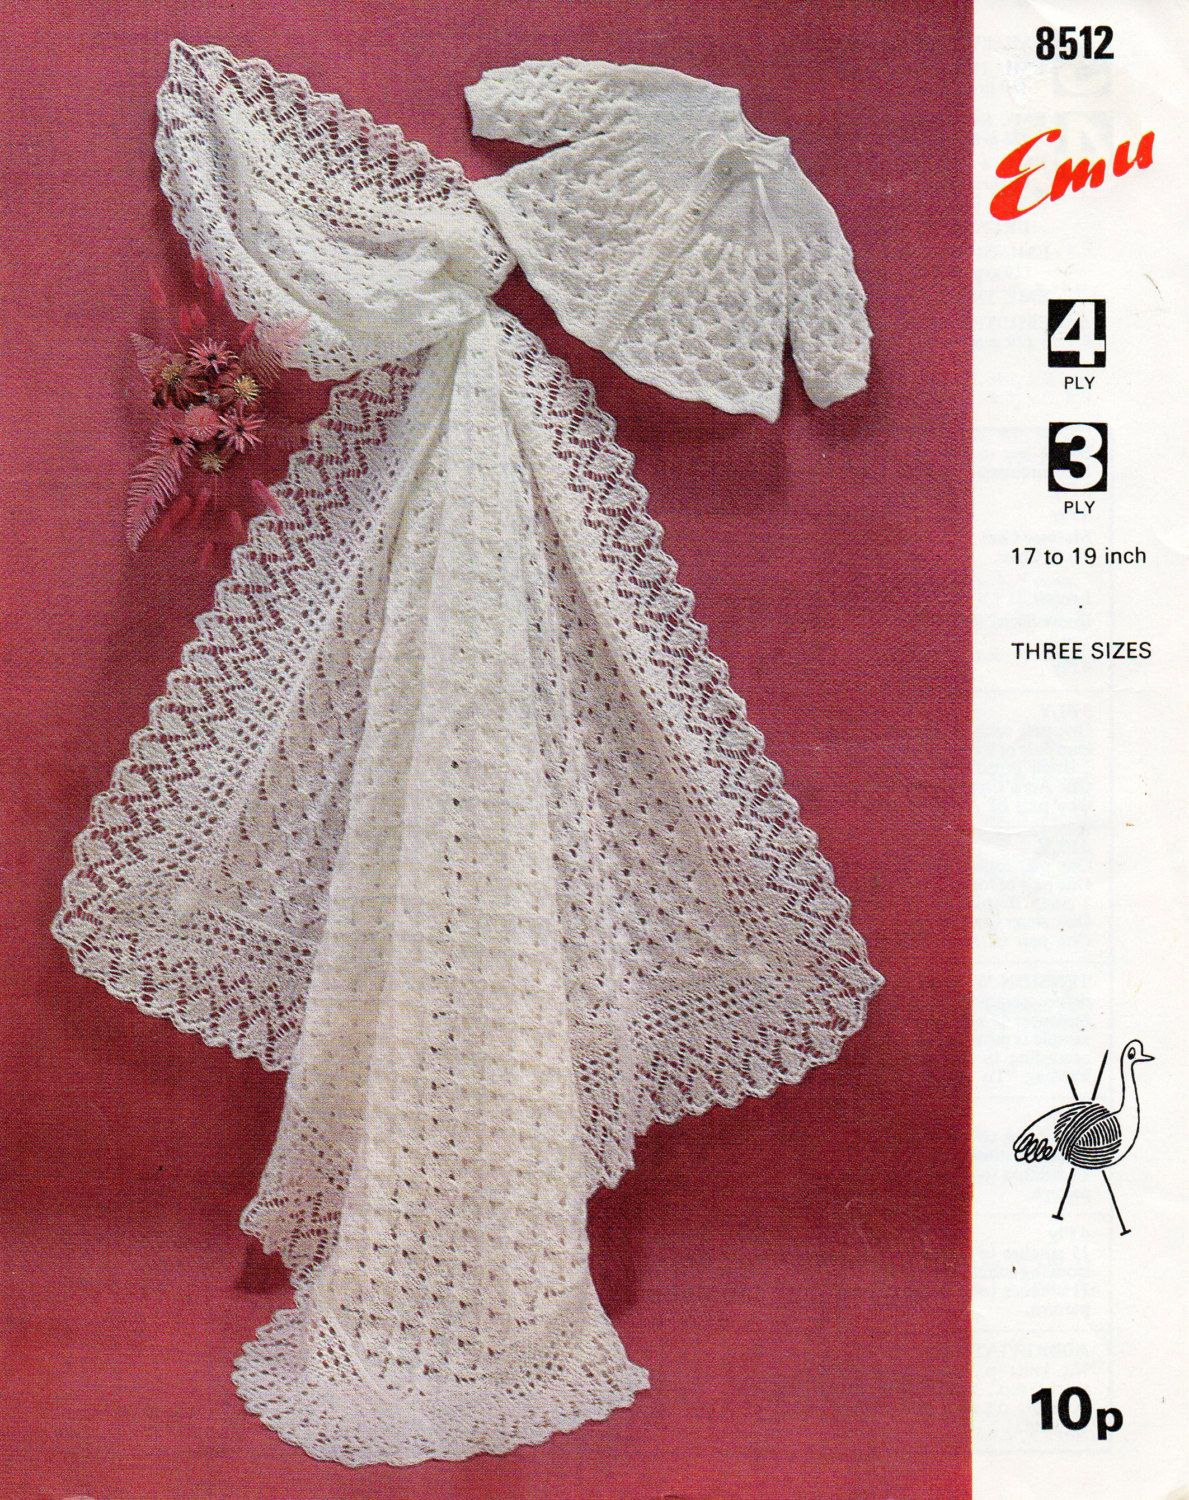 Baby Shawl Knitting Pattern PDF matinee coat square shawl